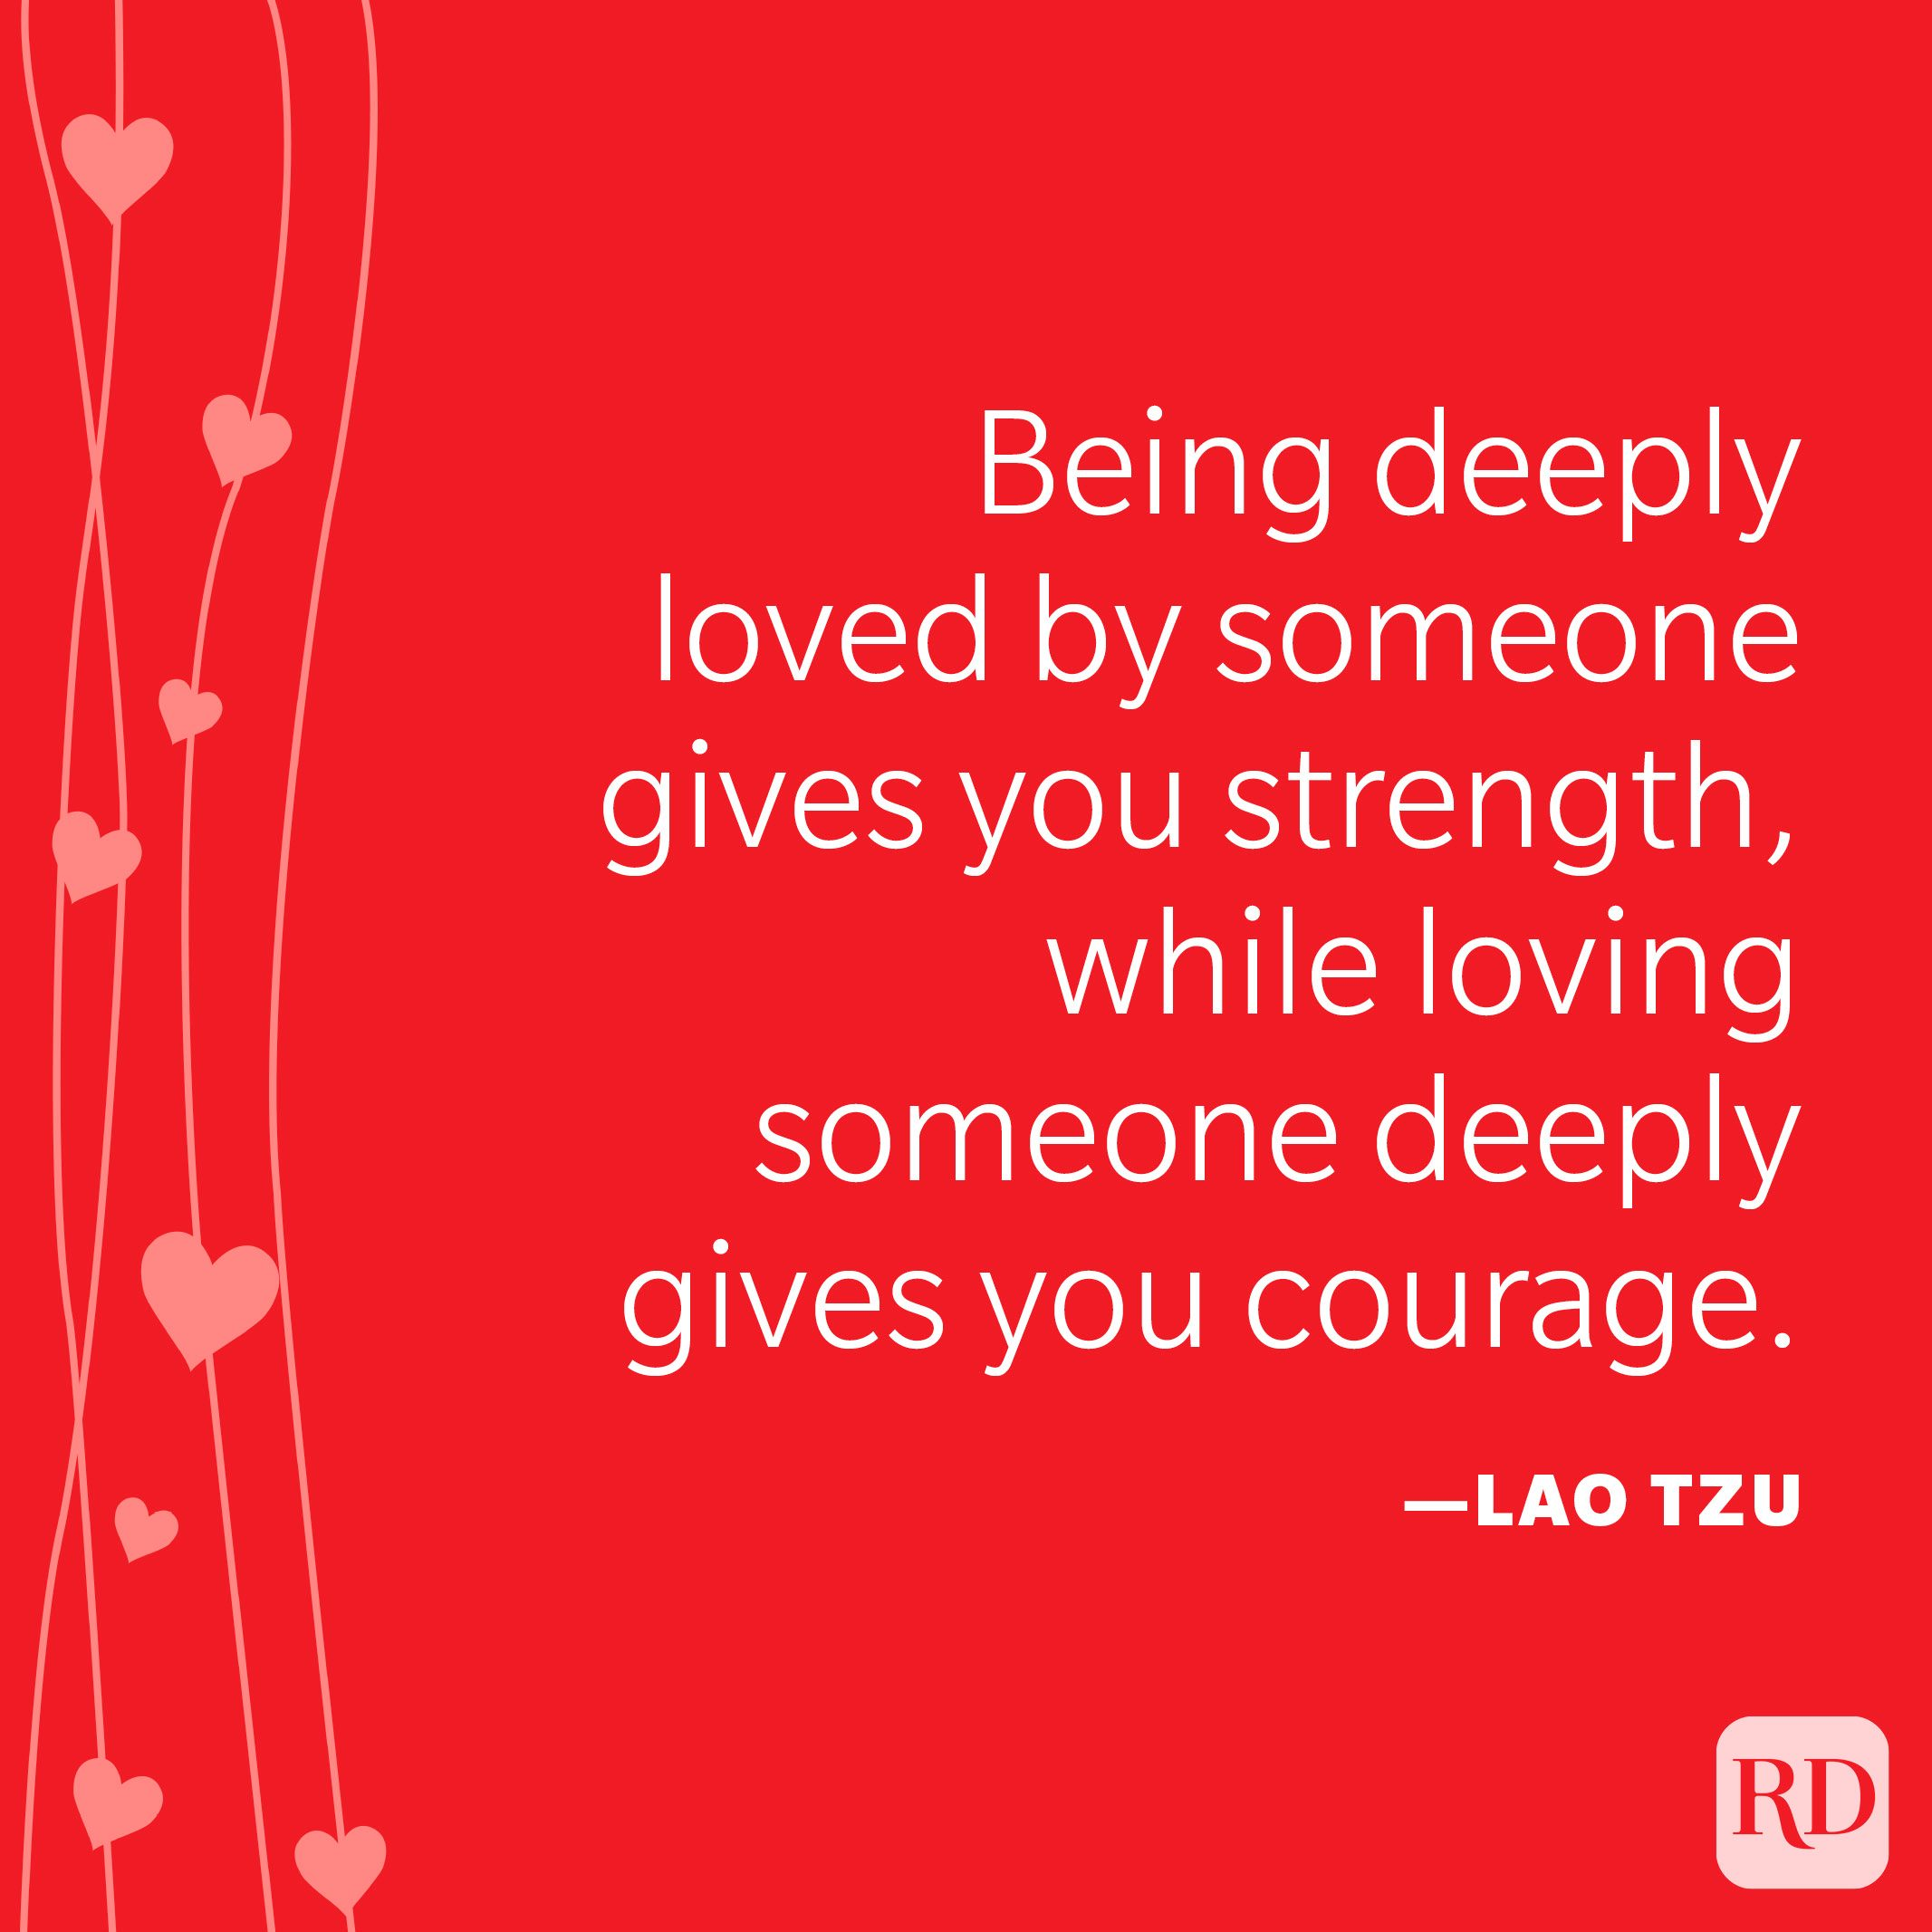 """""""Being deeply loved by someone gives you strength, while loving someone deeply gives you courage."""" —Lao Tzu"""